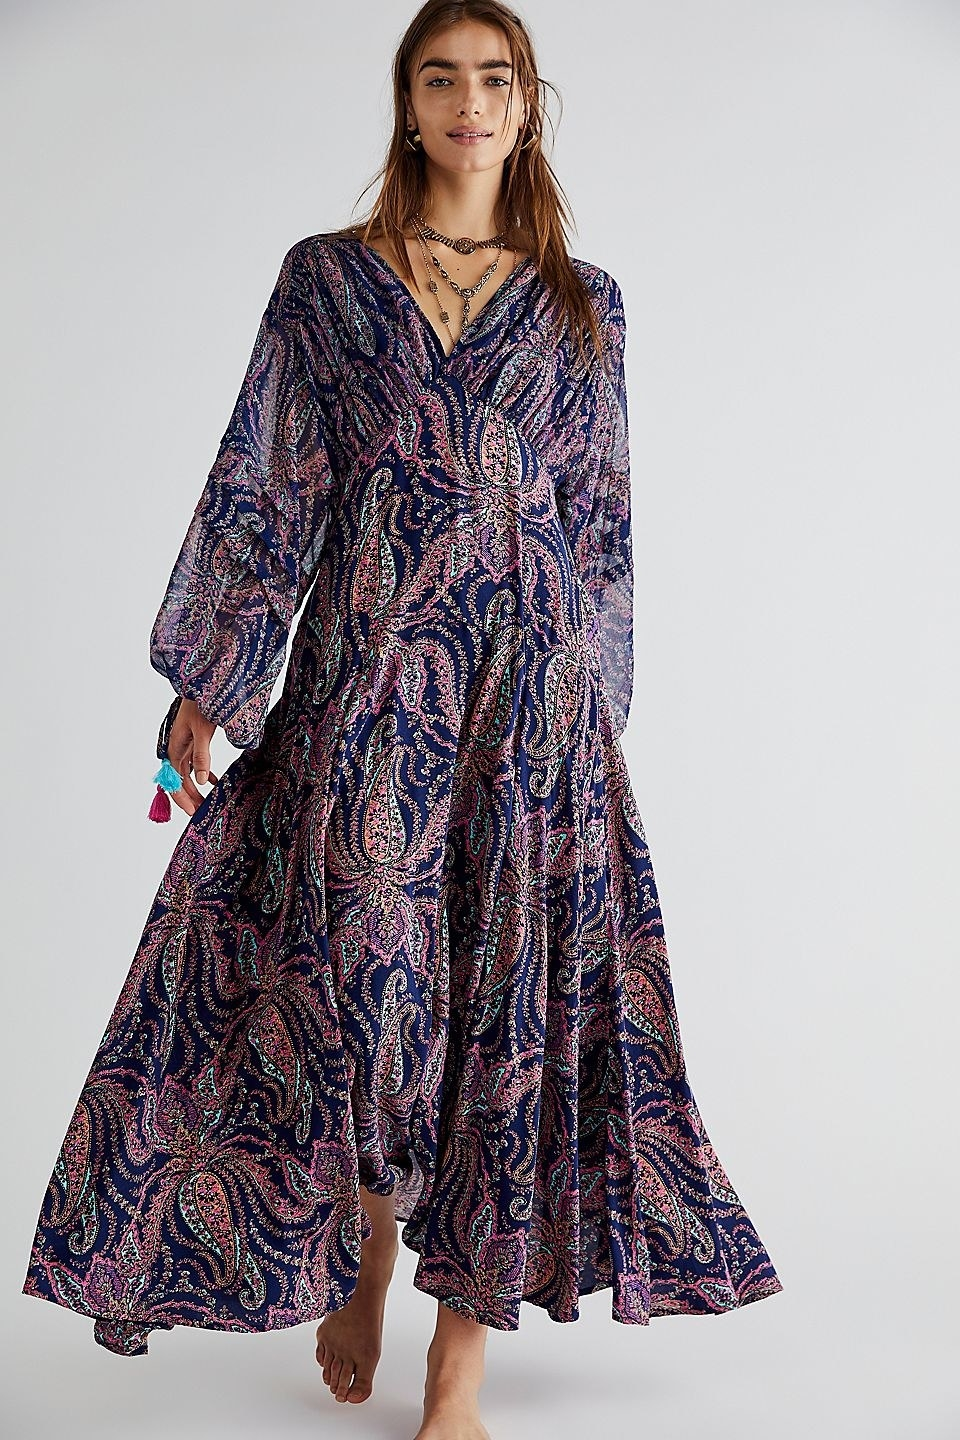 model wearing the blue and pink pattern maxi dress